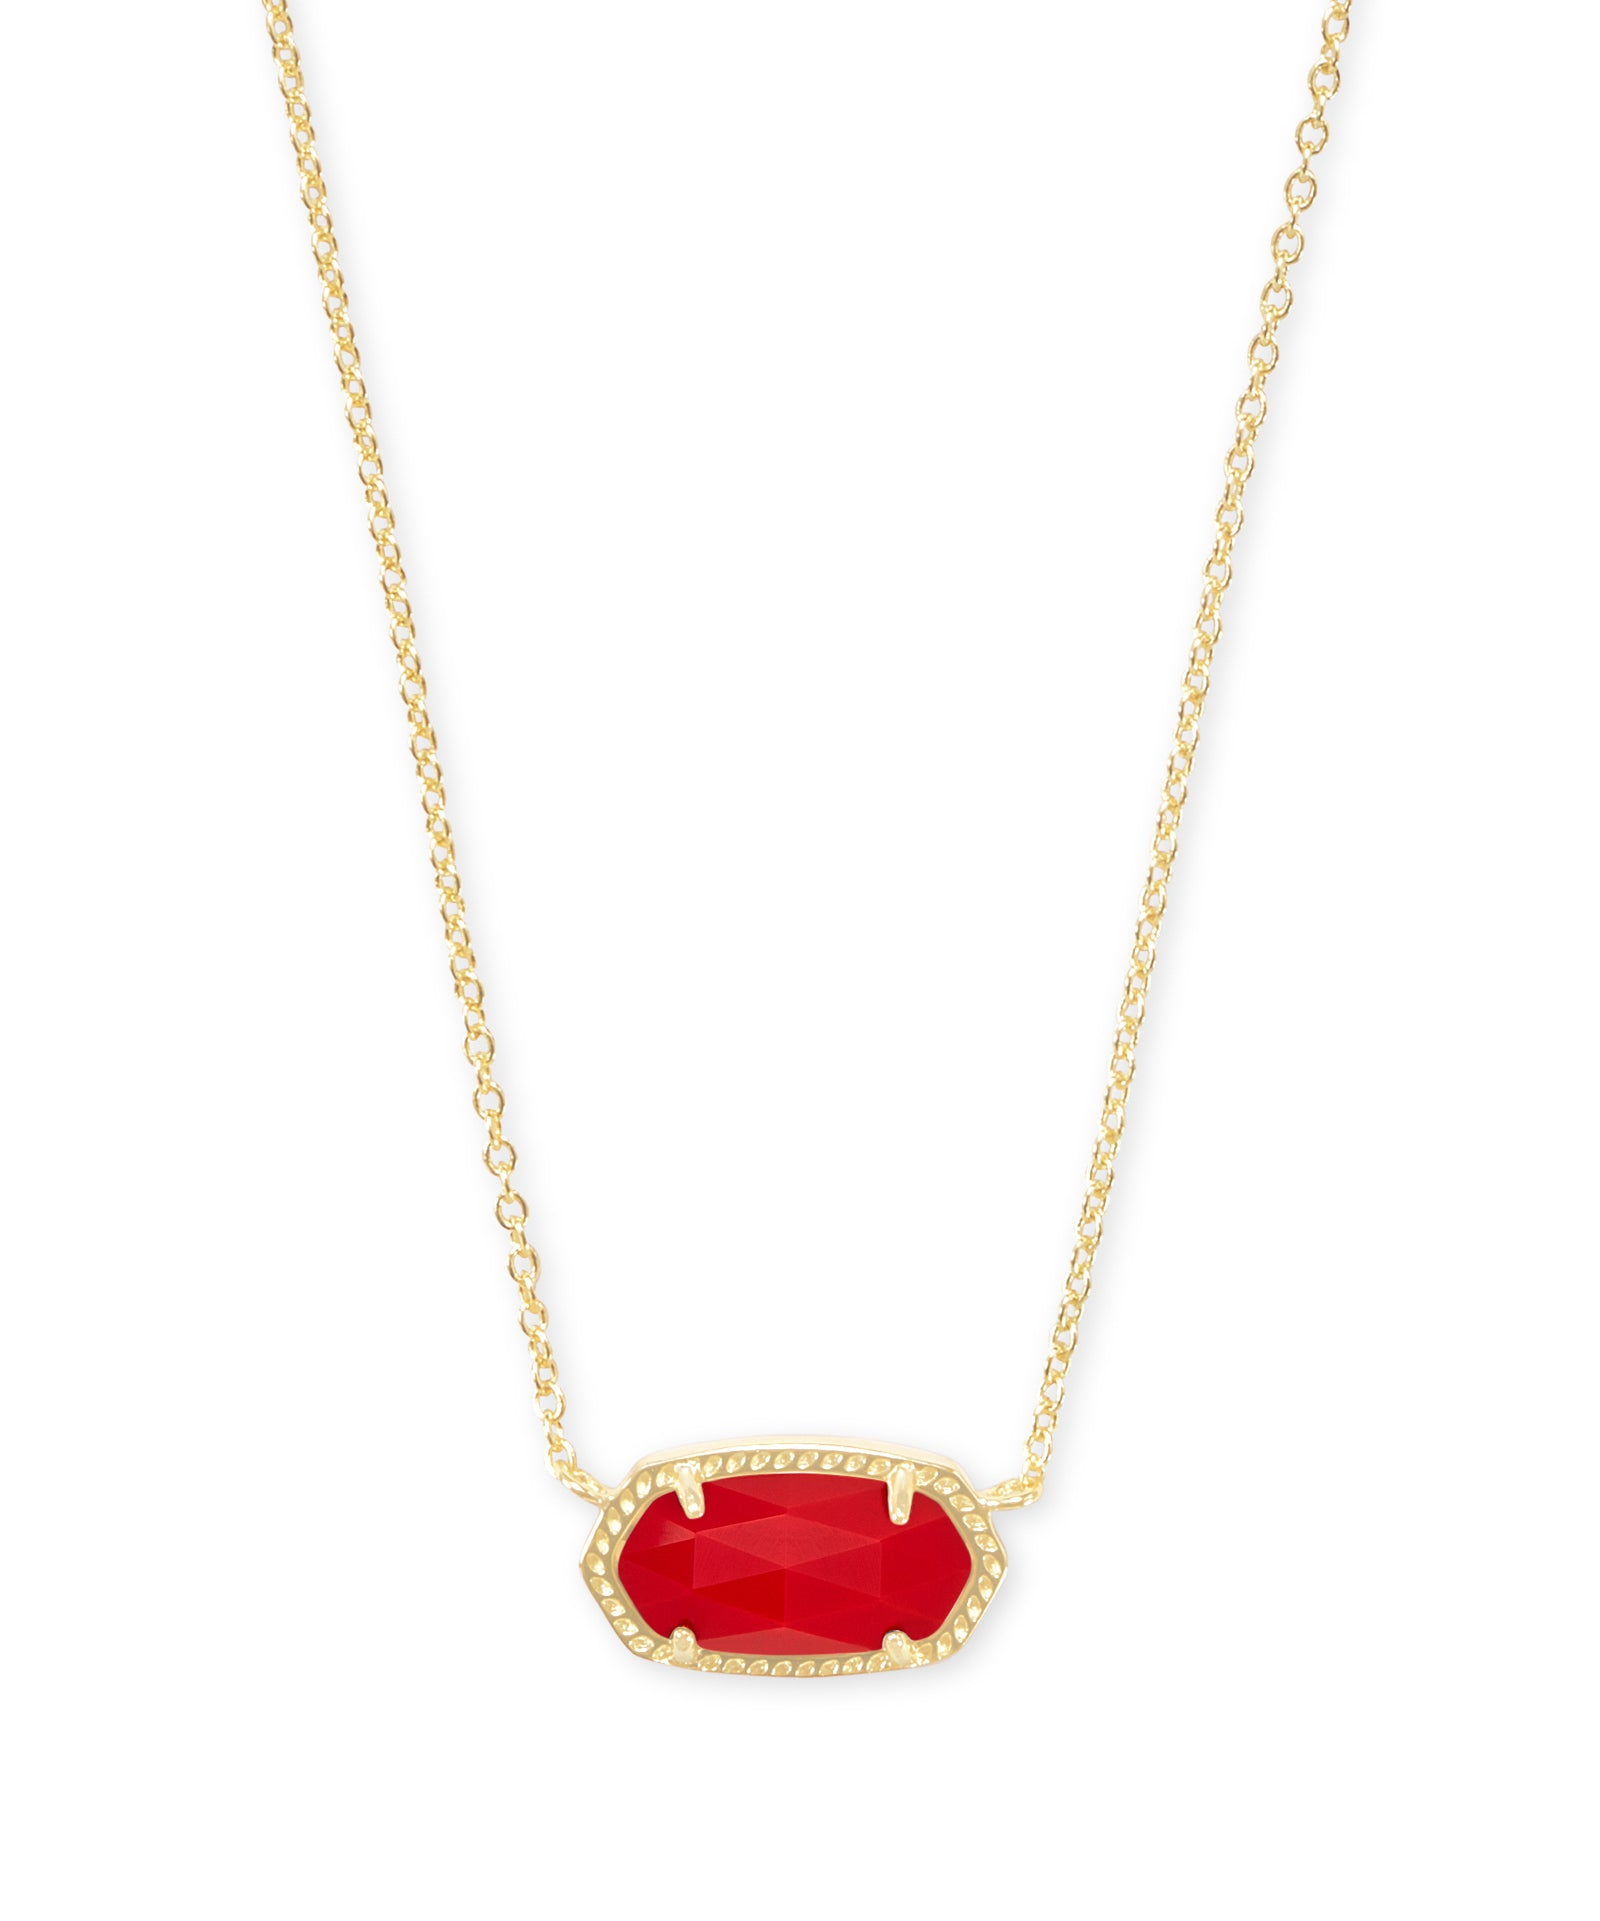 ELISA NECKLACE GOLD BRIGHT RED